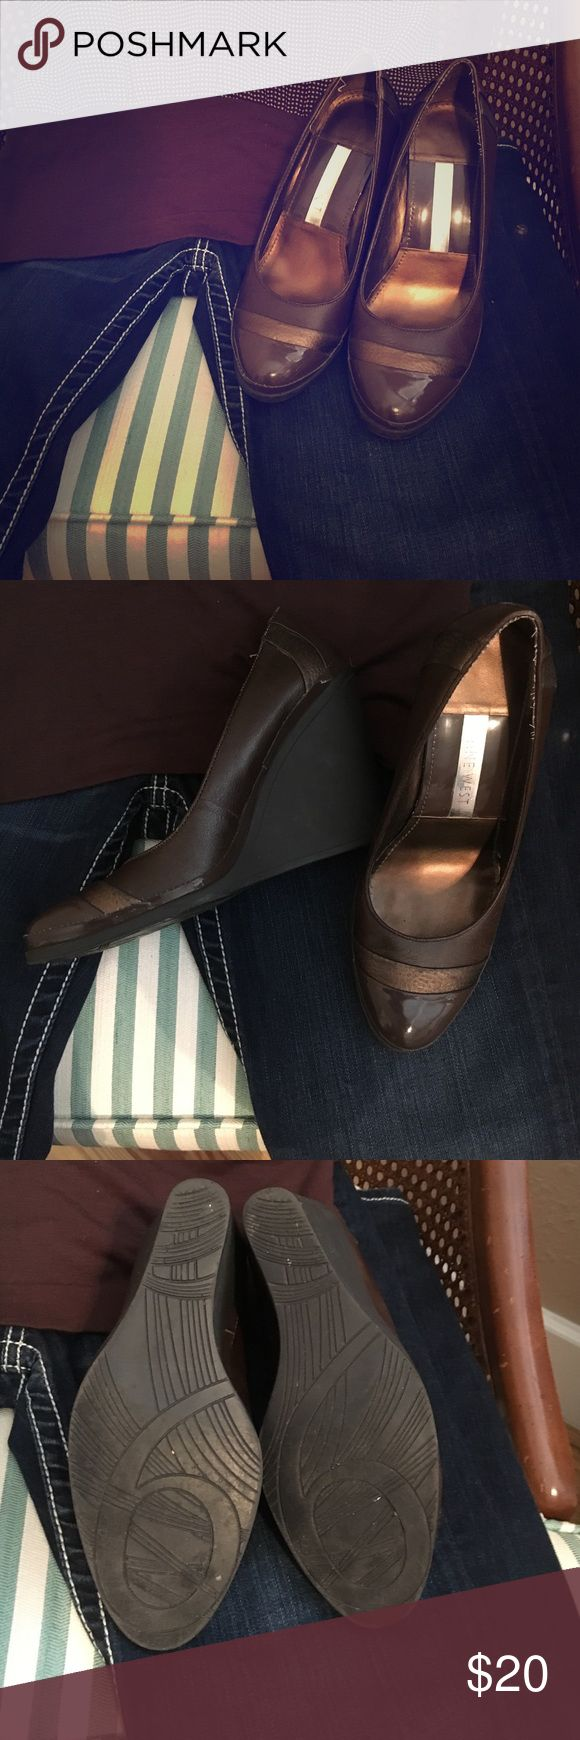 Nine West Leather Wedges Brown Patent Leather/Leather wedge dress shoes. A little worn, but still in good condition. Nine West Shoes Wedges